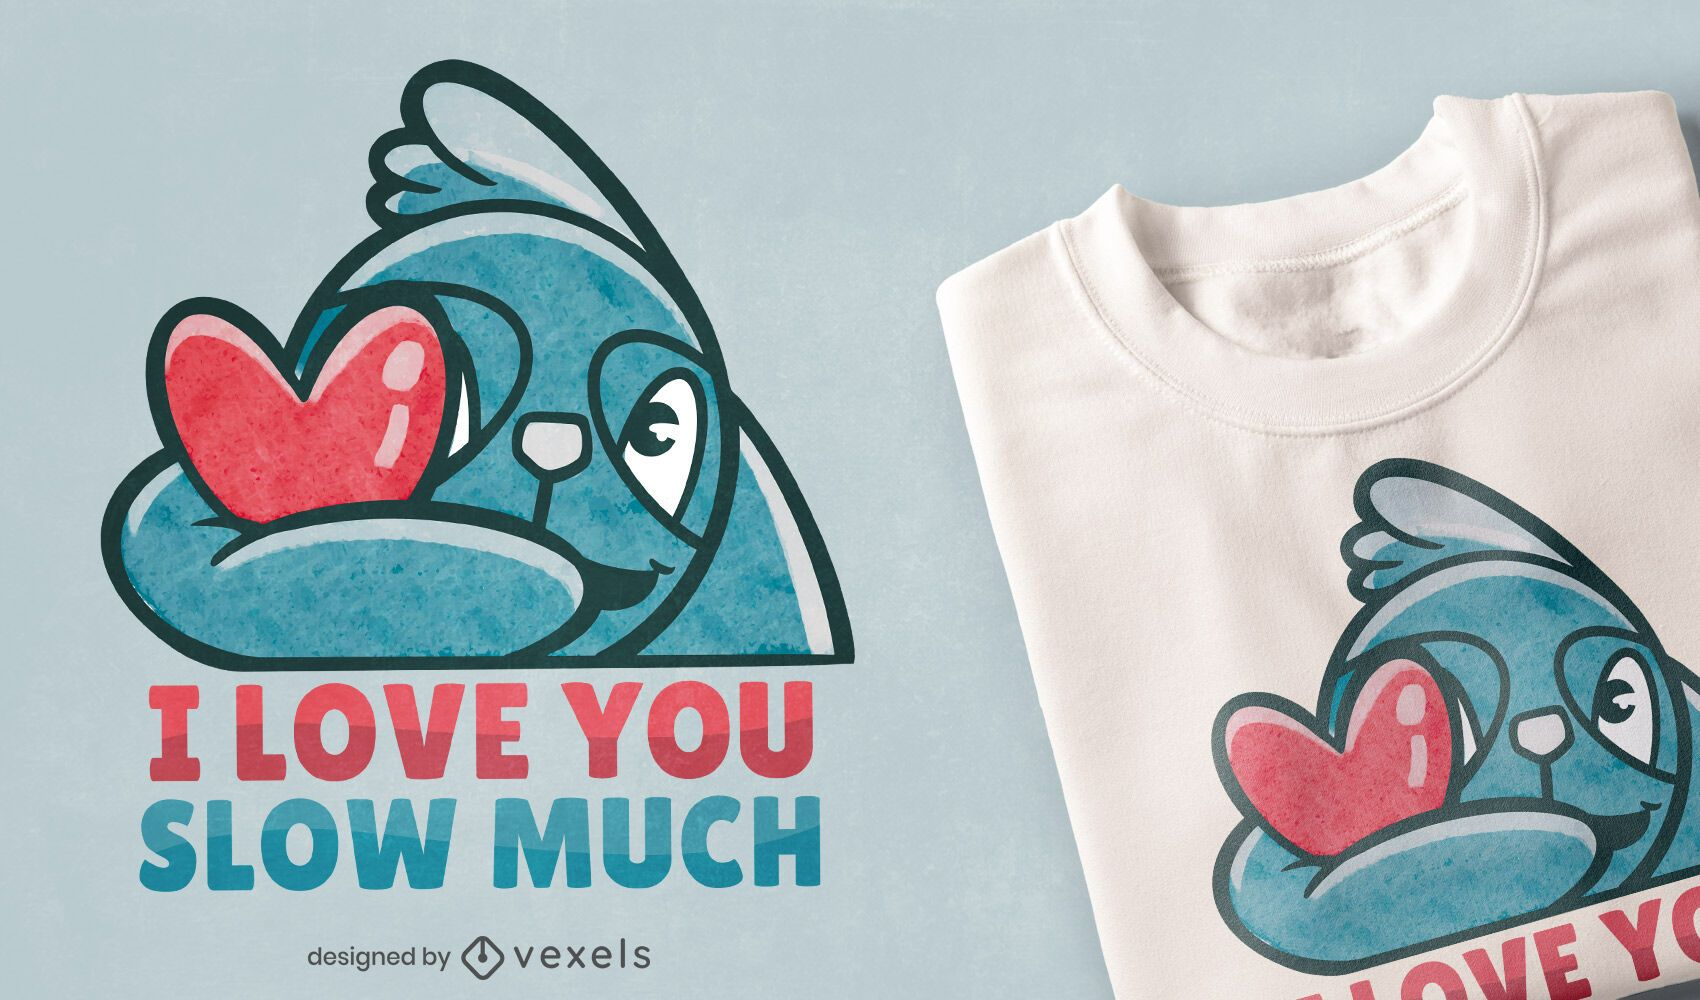 Love you slow much t-shirt design